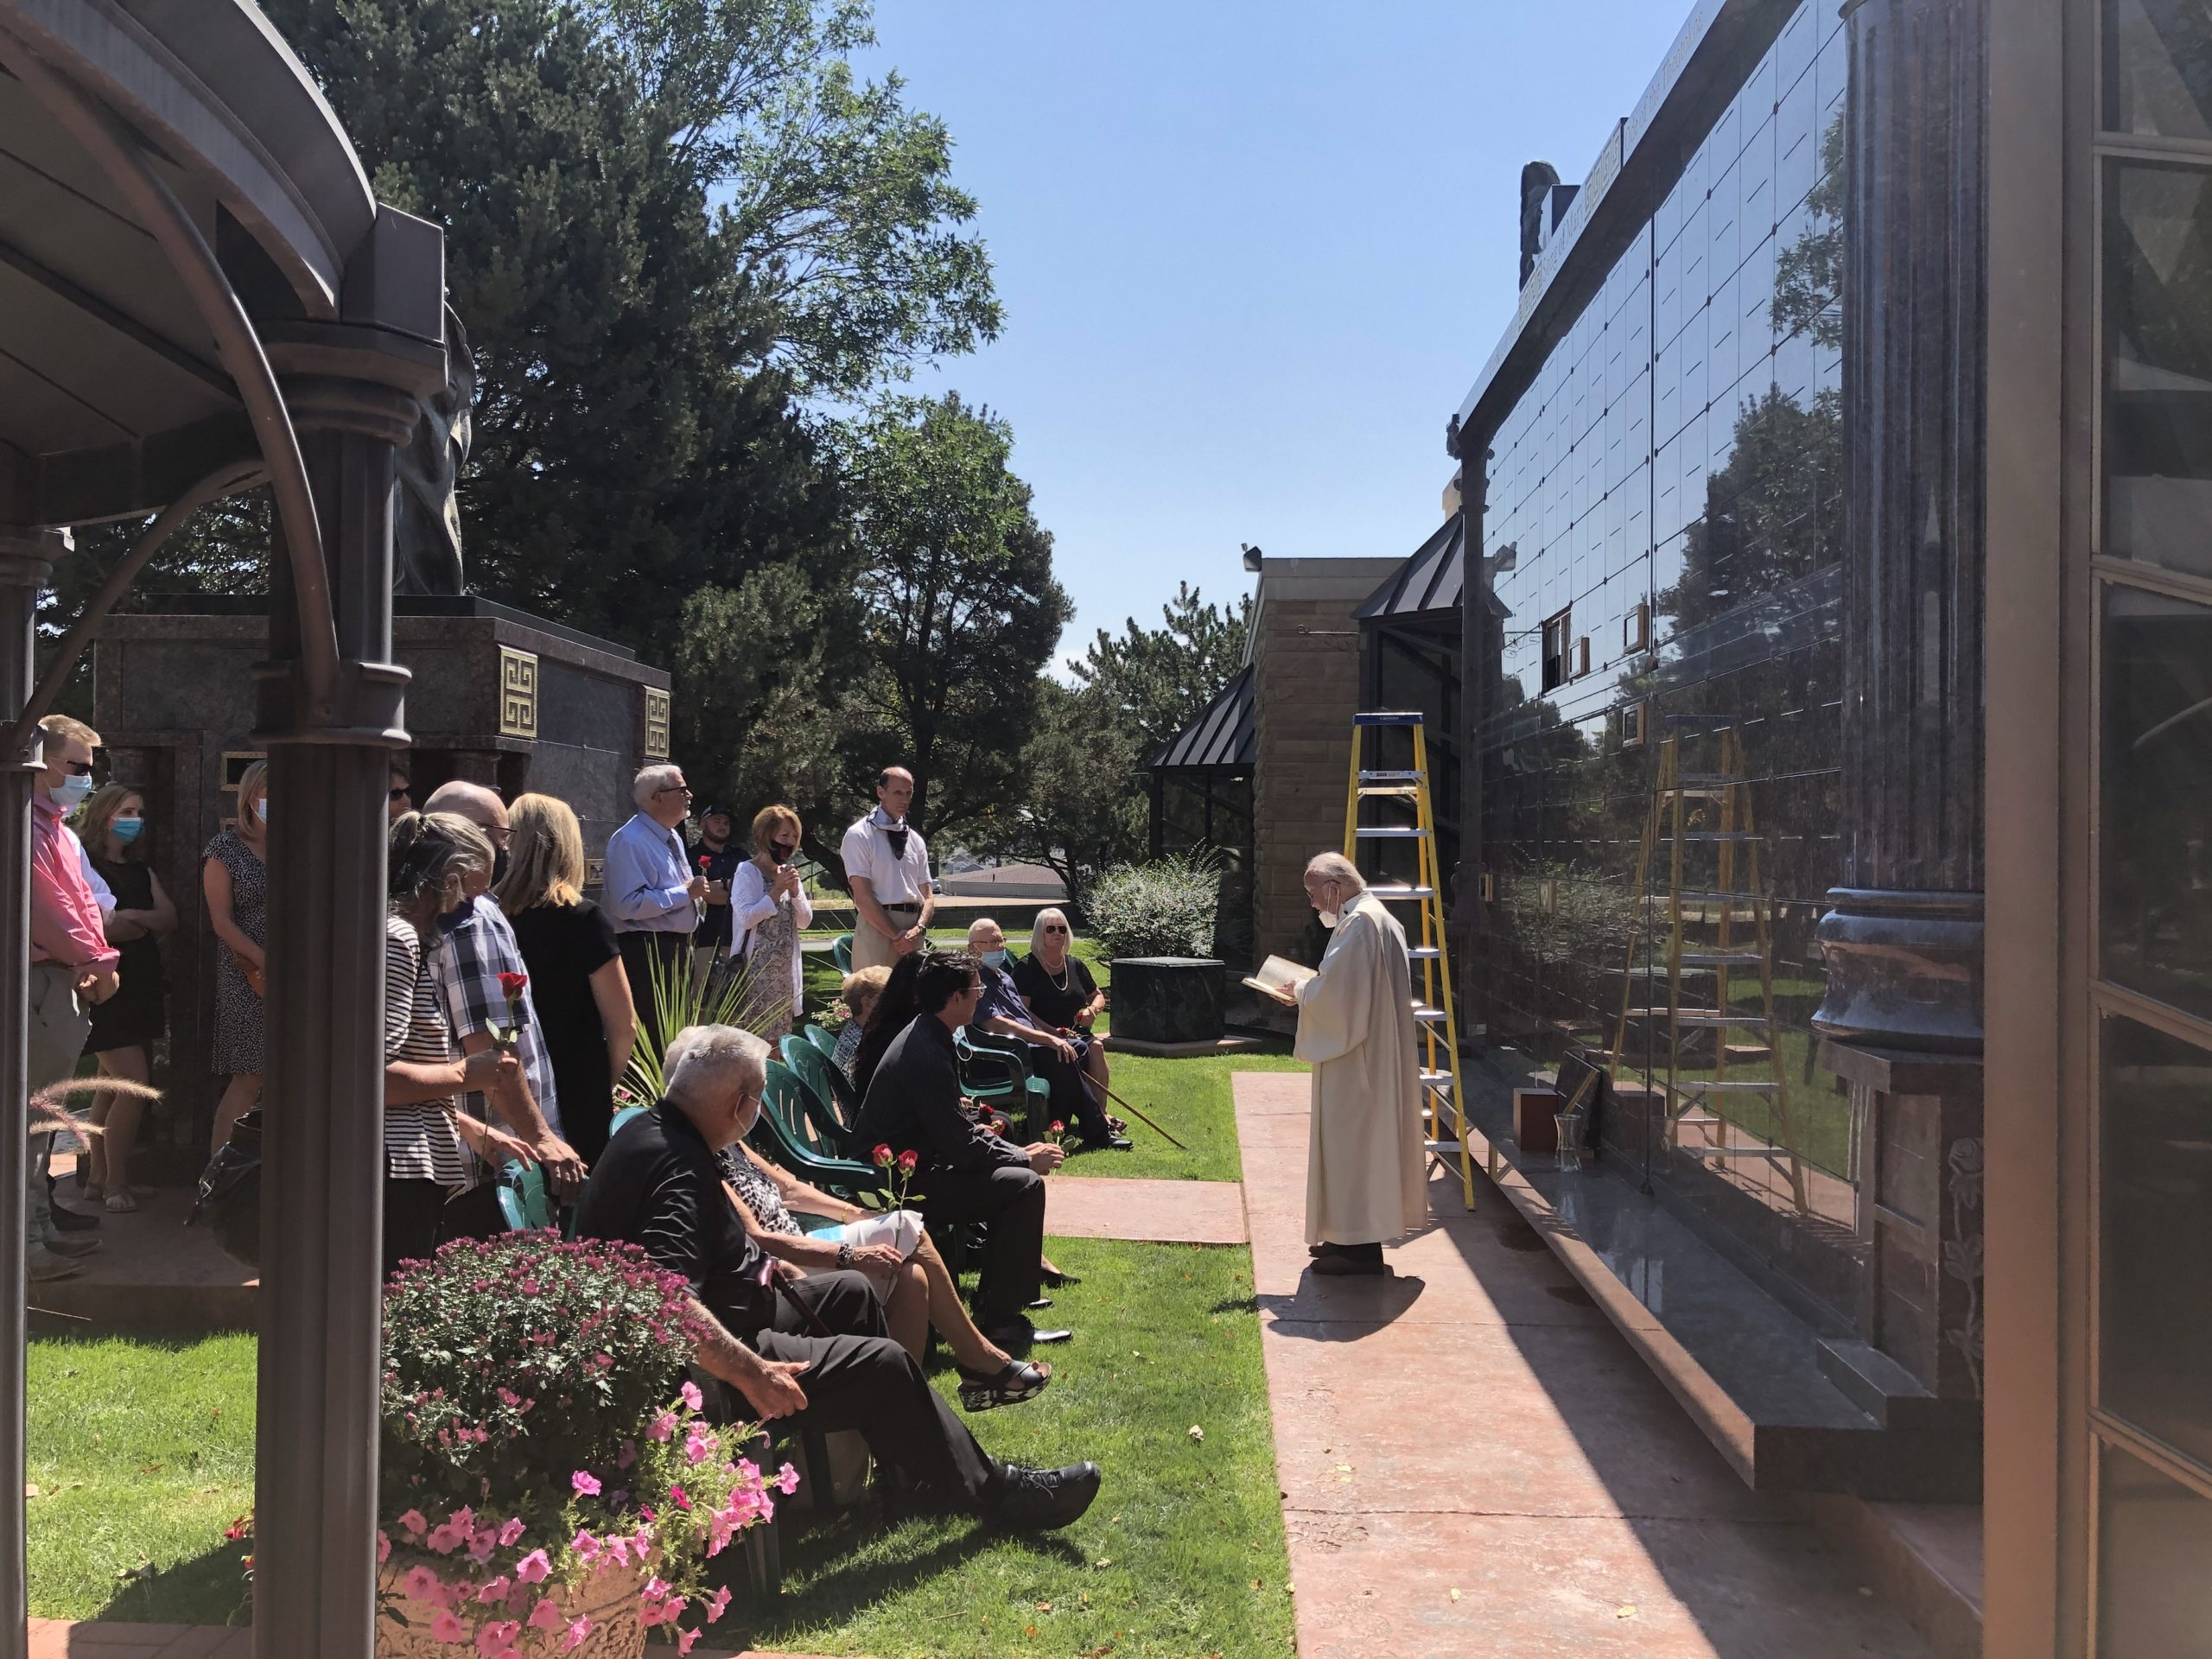 Song of Mary Columbarium in Colorado Springs for Placement of Cremated Remains after Cremation